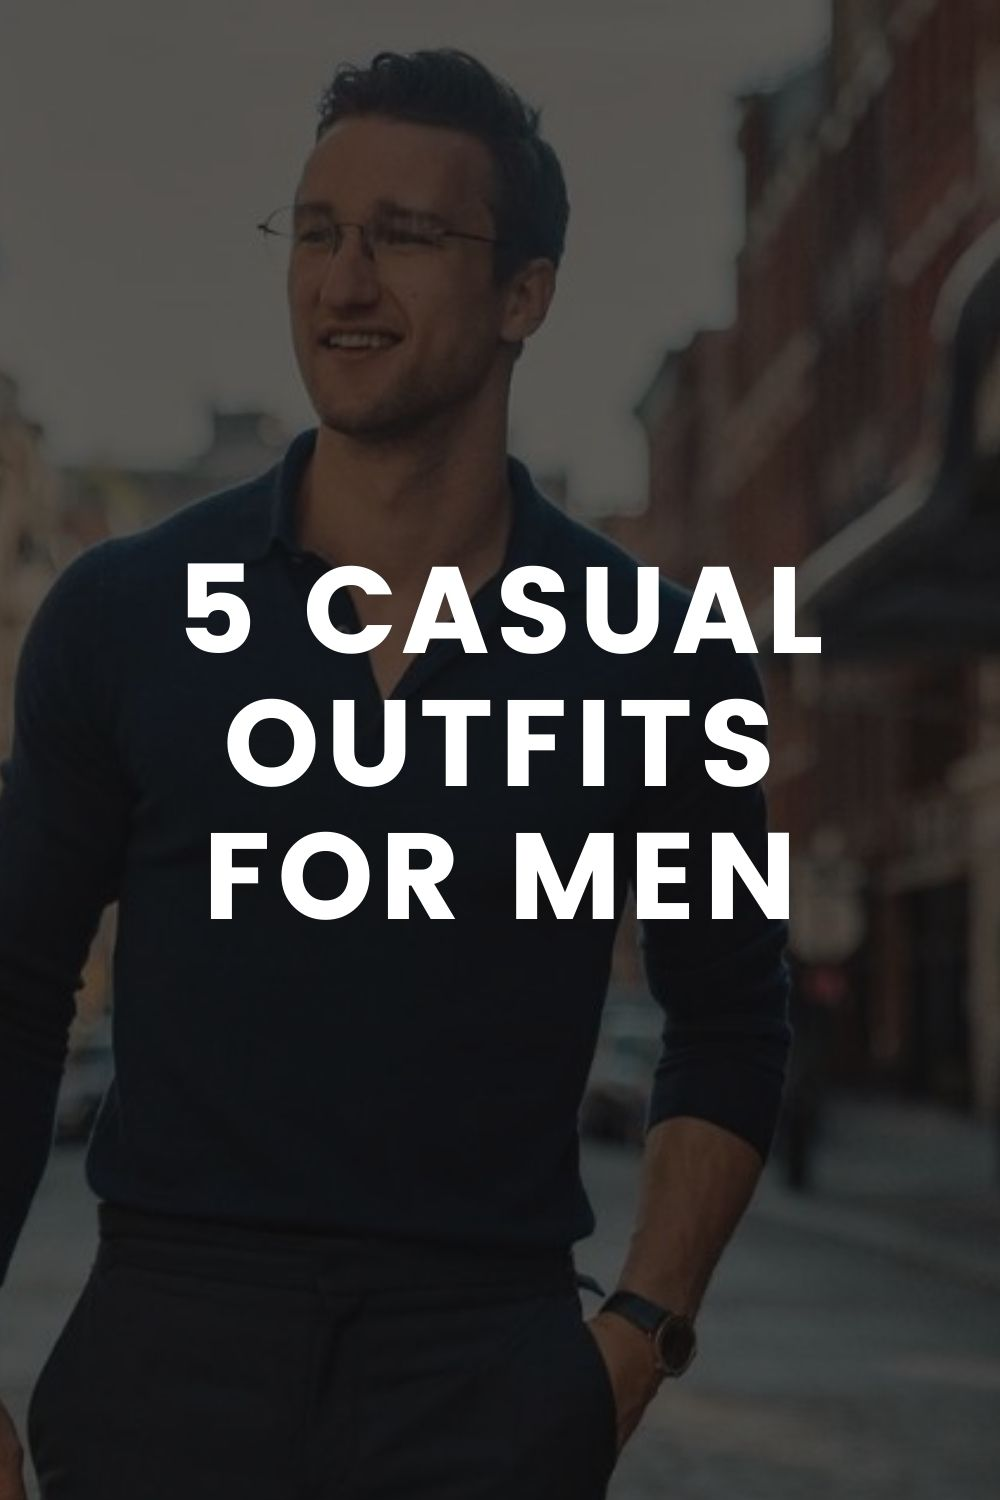 5 Casual Outfits For Men